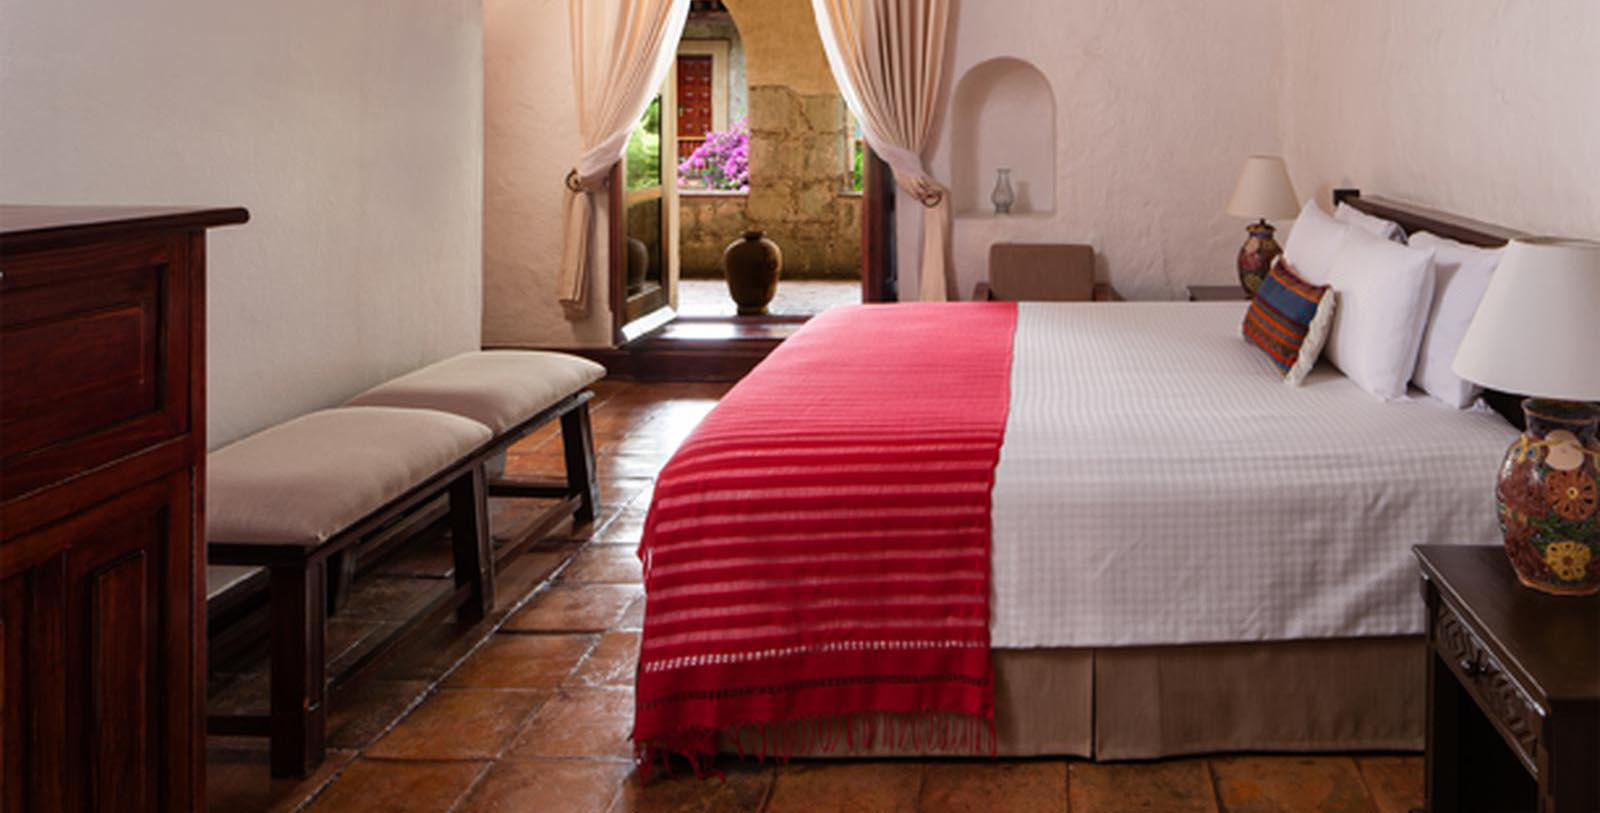 Image of Guestroom Interior Quinta Real Oaxaca, 1576, Member of Historic Hotels Worldwide, in Oaxaca, Mexico, Location